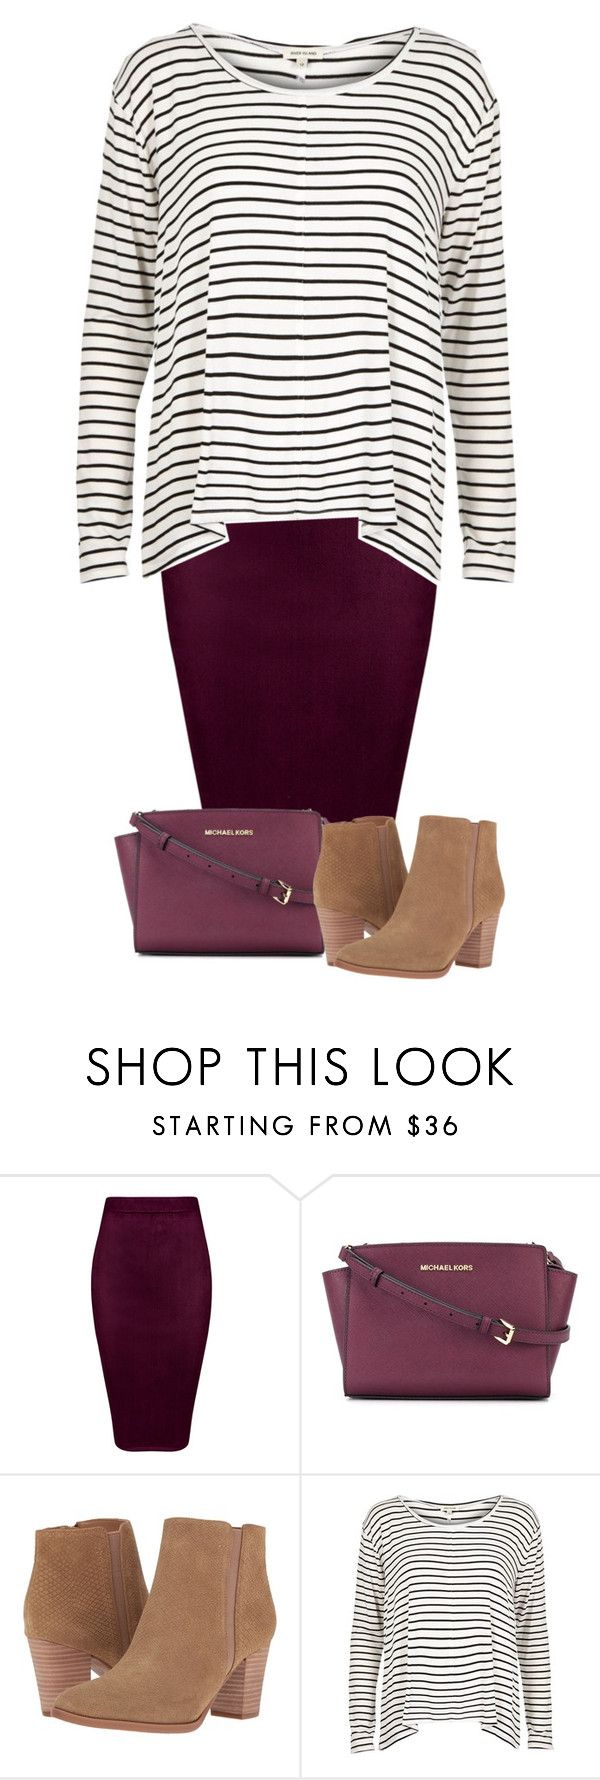 """Untitled #379"" by miagracerobinson ❤ liked on Polyvore featuring MICHAEL Michael Kors, Franco Sarto and River Island"